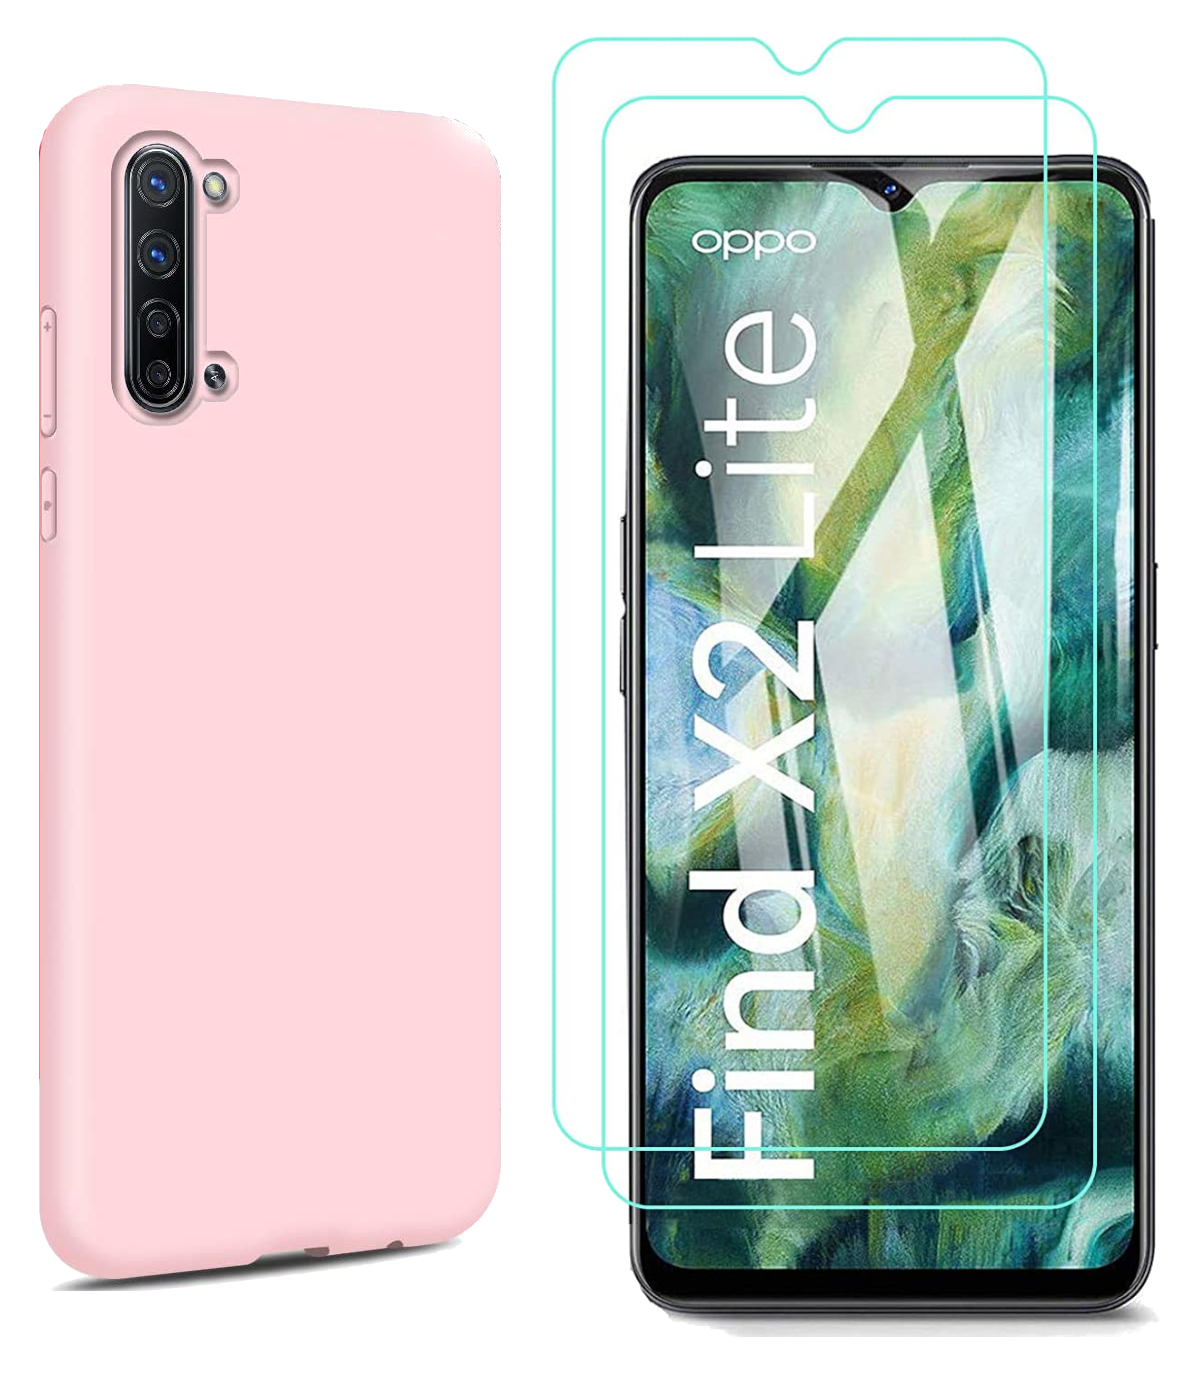 Coque Silicone TPU Couleur Rose + 2 Verres Trempes Pour Oppo Find X2 Lite Little Boutik®